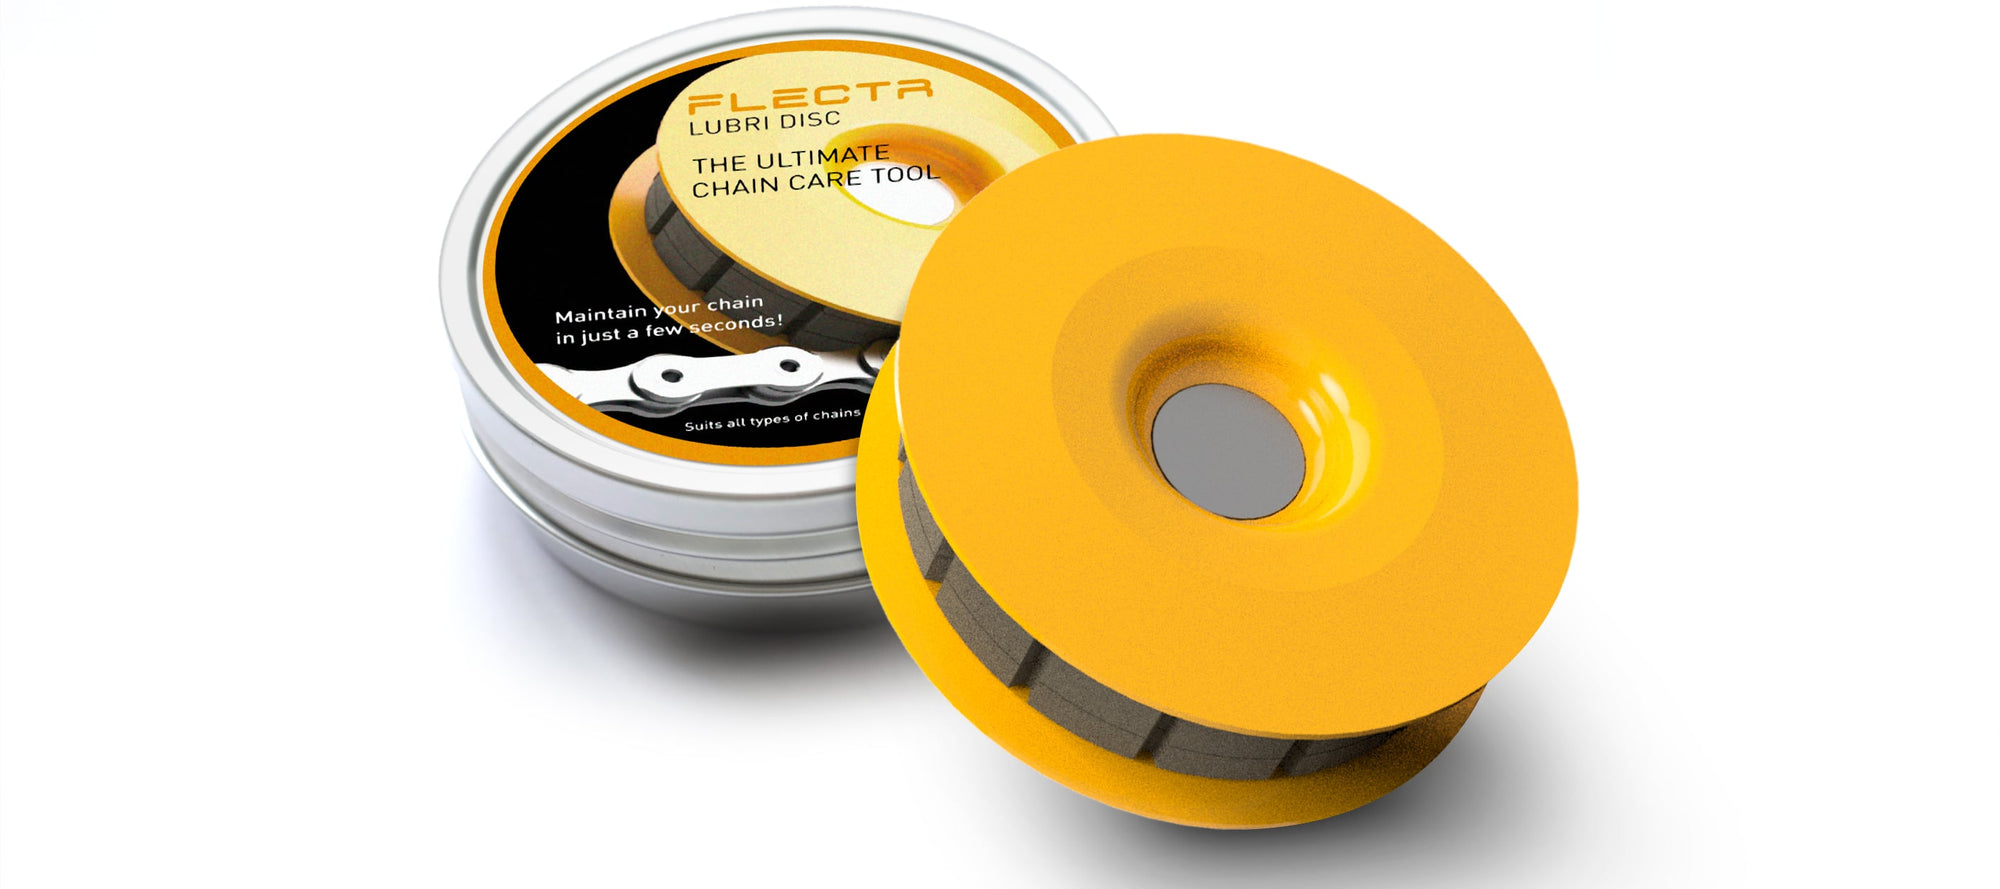 The FLECTR LUBRI DISC comes in a handy box.